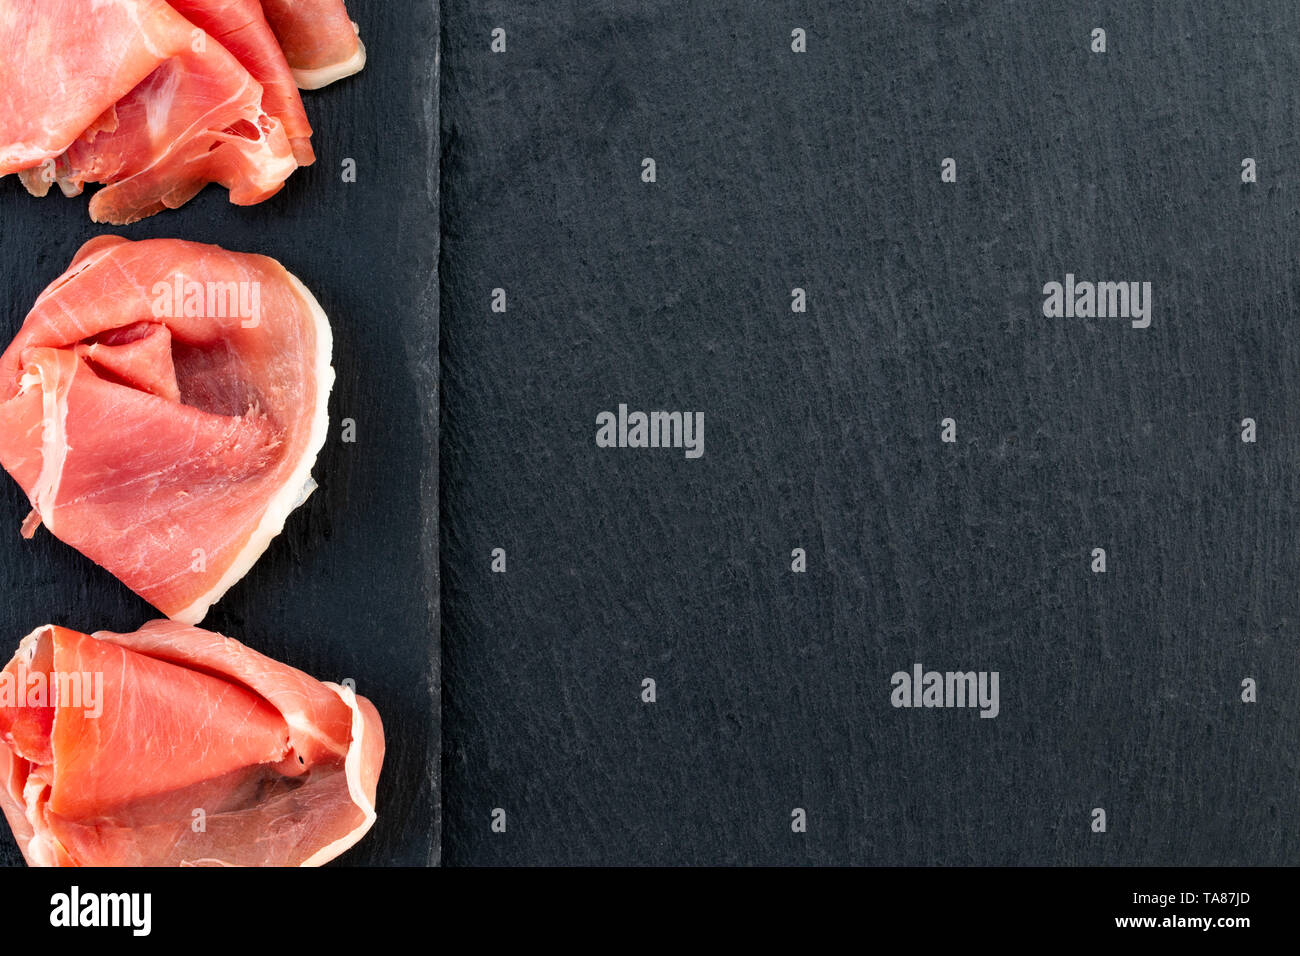 Italian prosciutto crudo or spanish jamon and sausages. Raw ham on stone cutting board, copy space, top view. - Stock Image